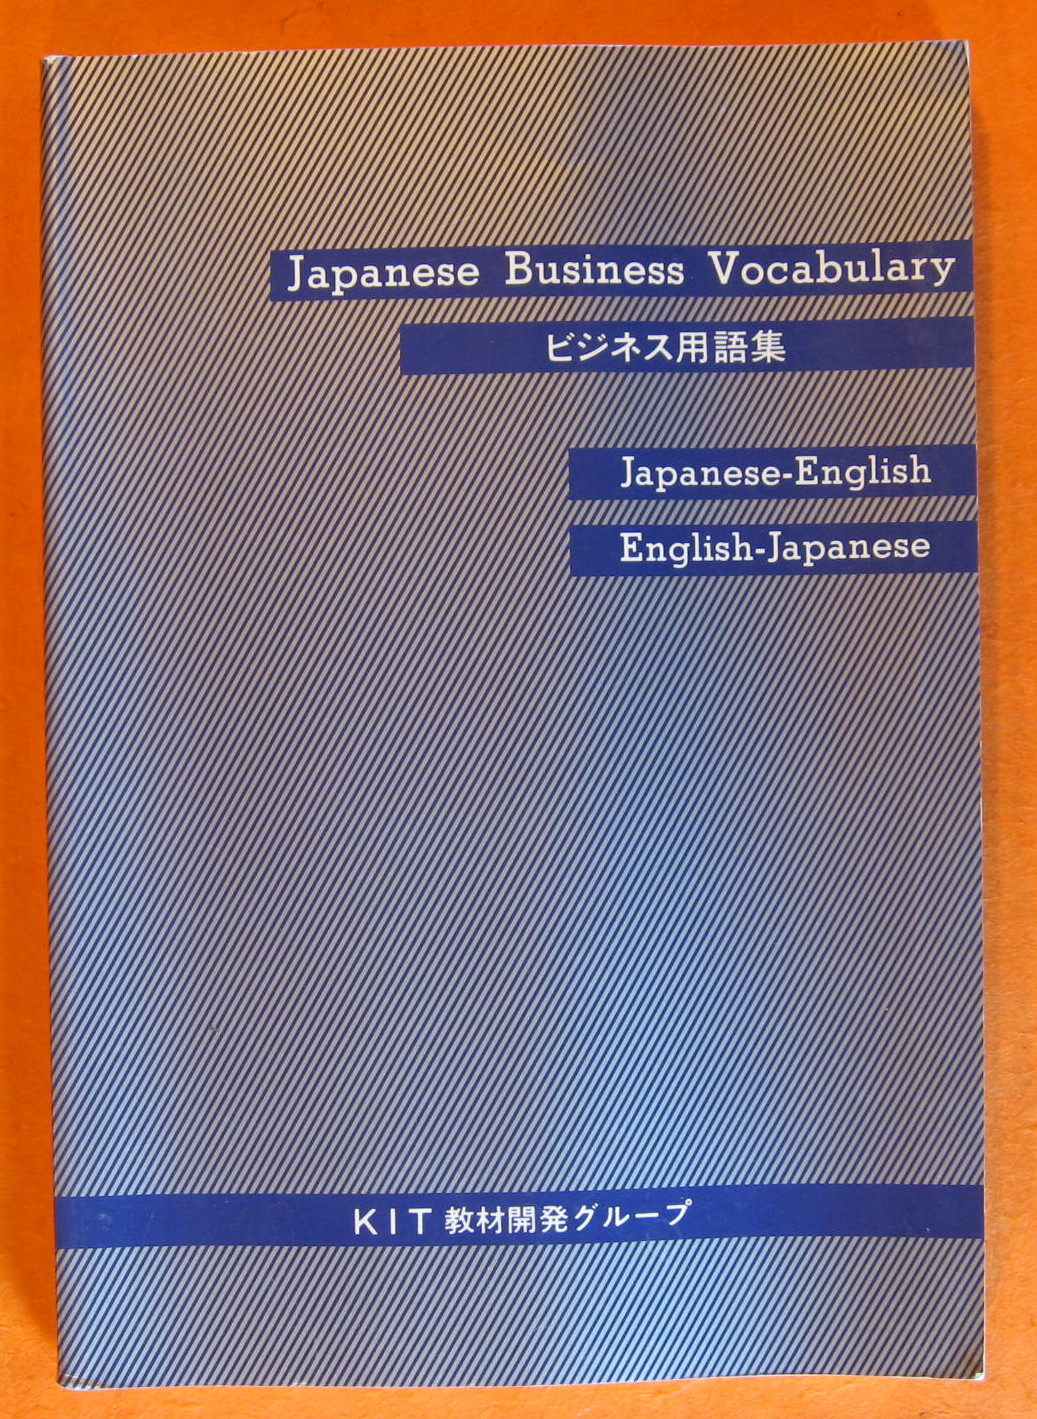 Japanese Business Vocabulary, Japanese- English, English- Japanese